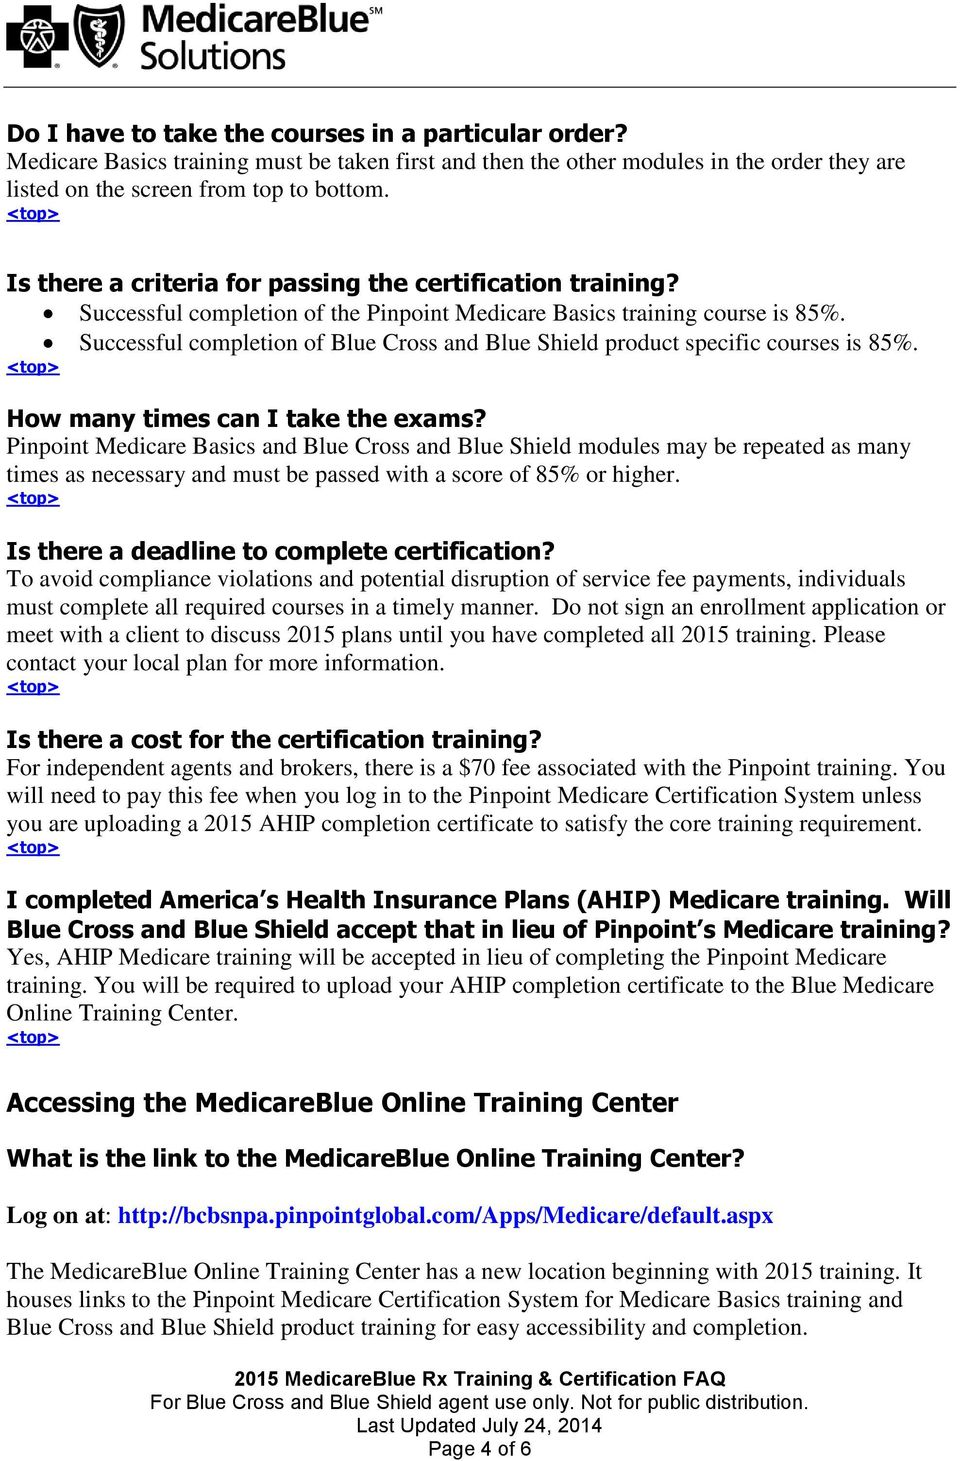 Training And Certification Frequently Asked Questions Pdf